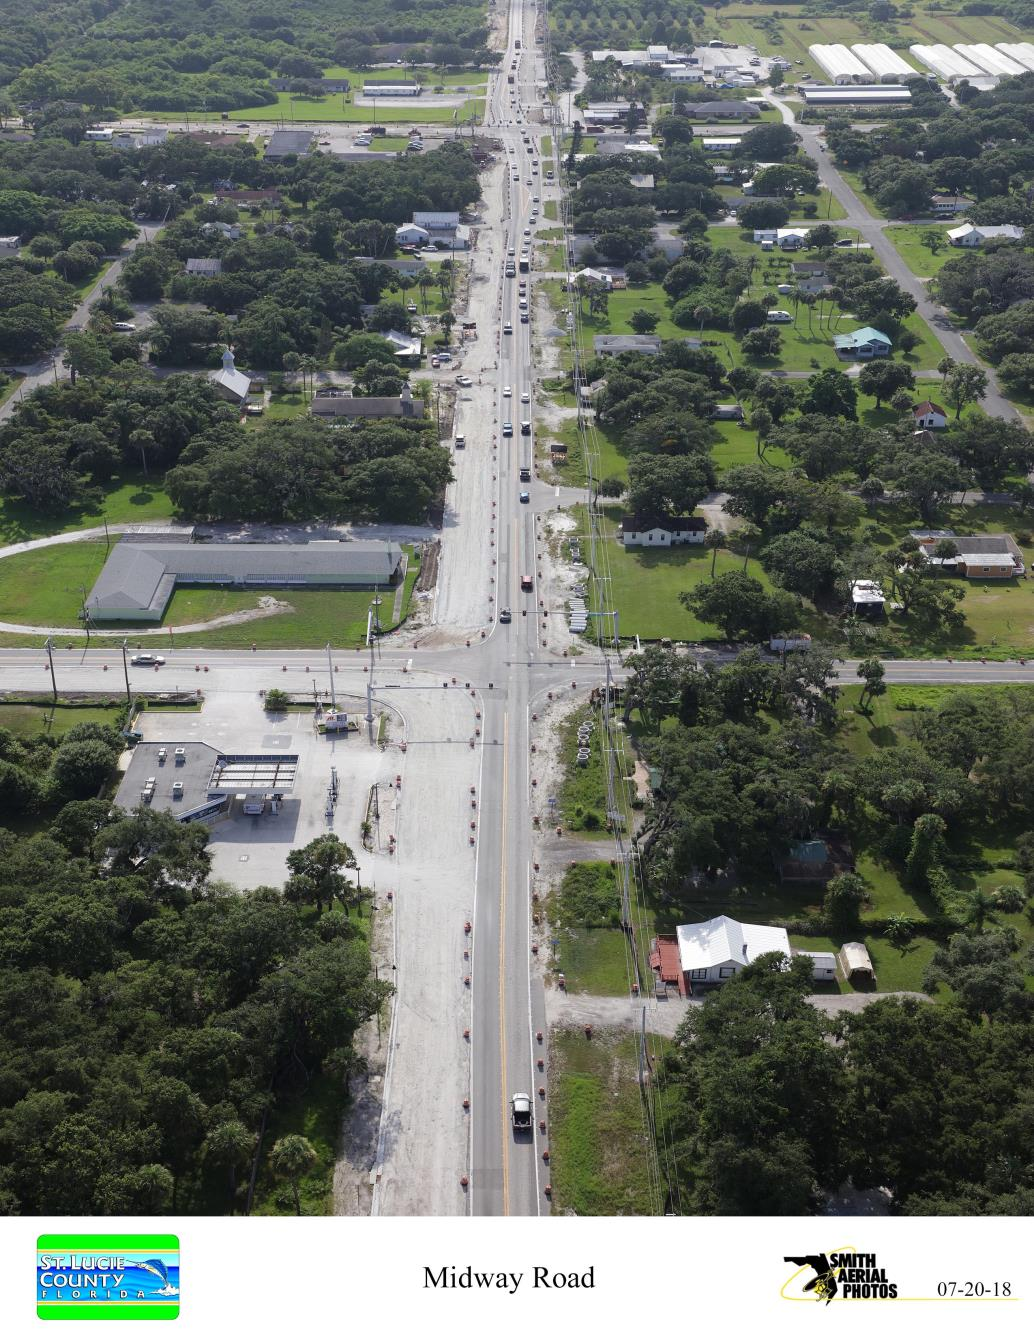 Midway Rd looking East from St. Lucie River